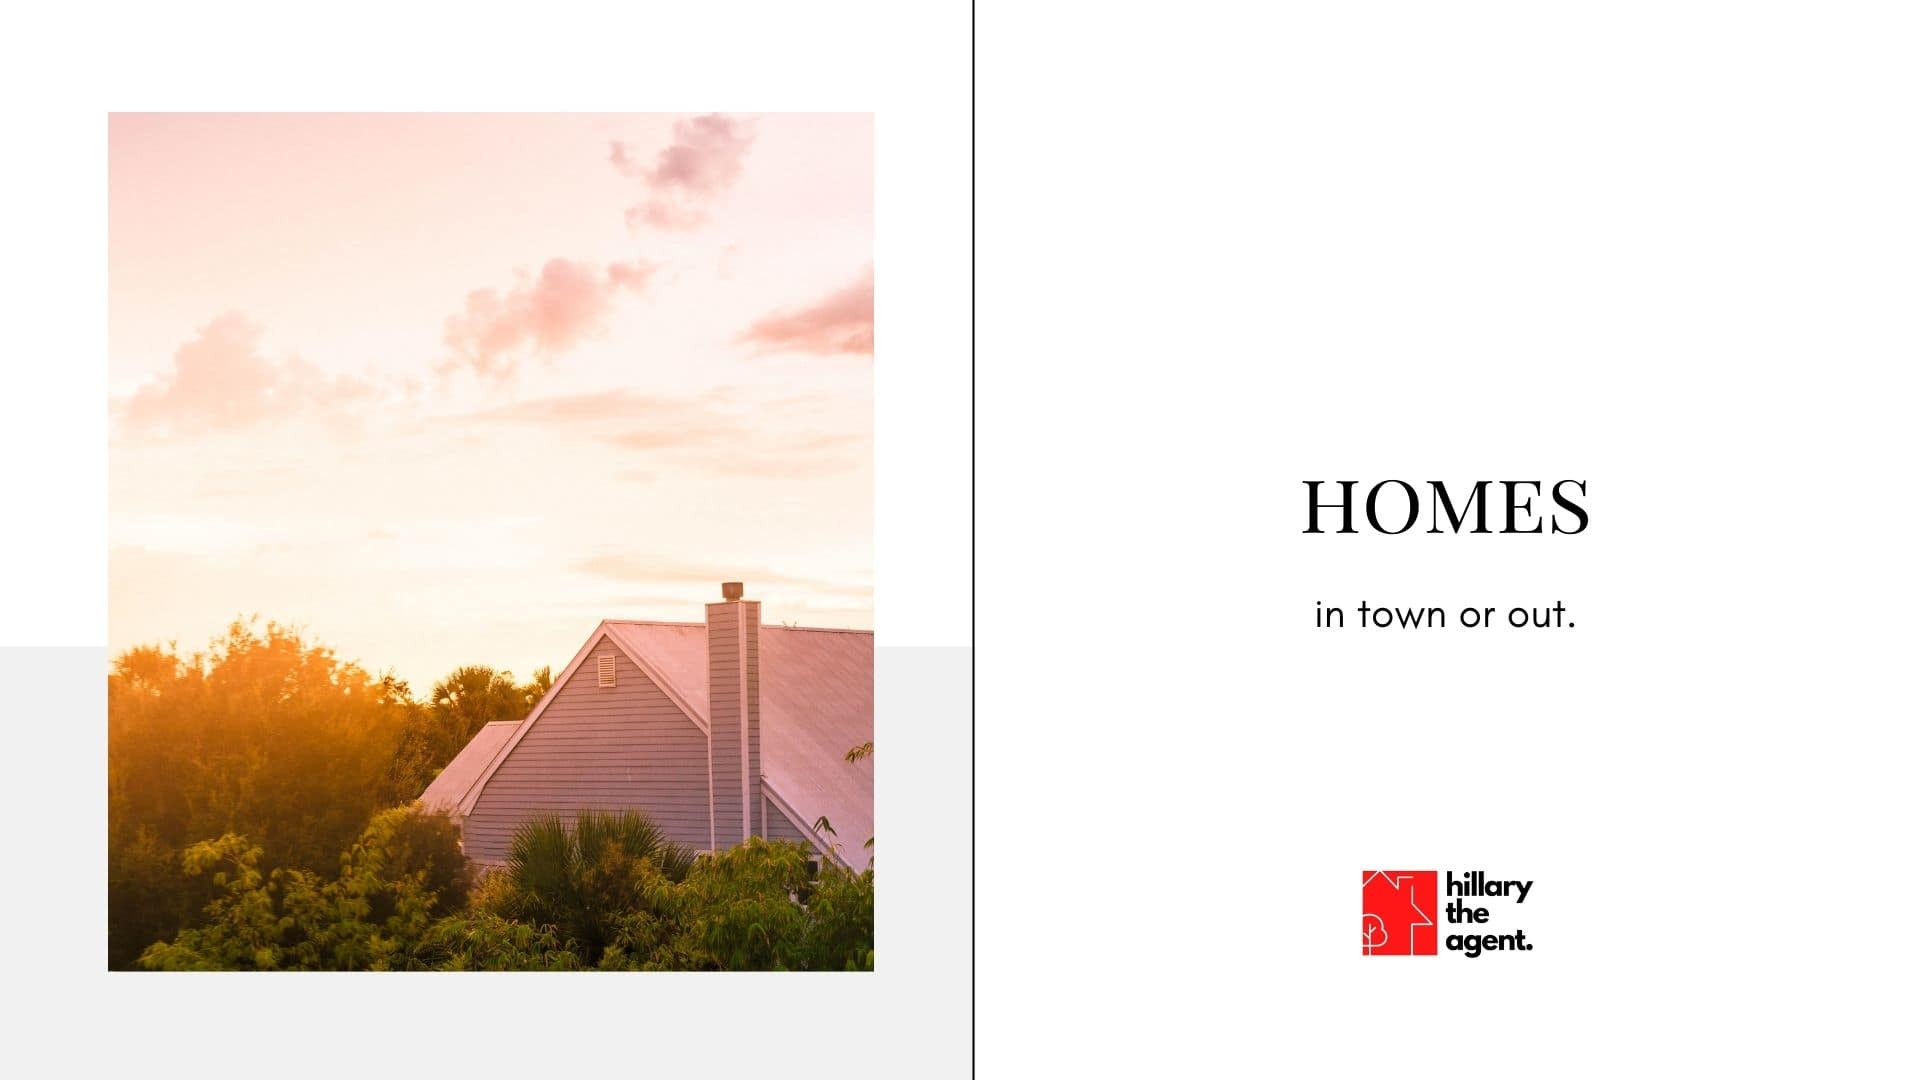 Homes, in town or out. Finding a dream home takes a dream agent.